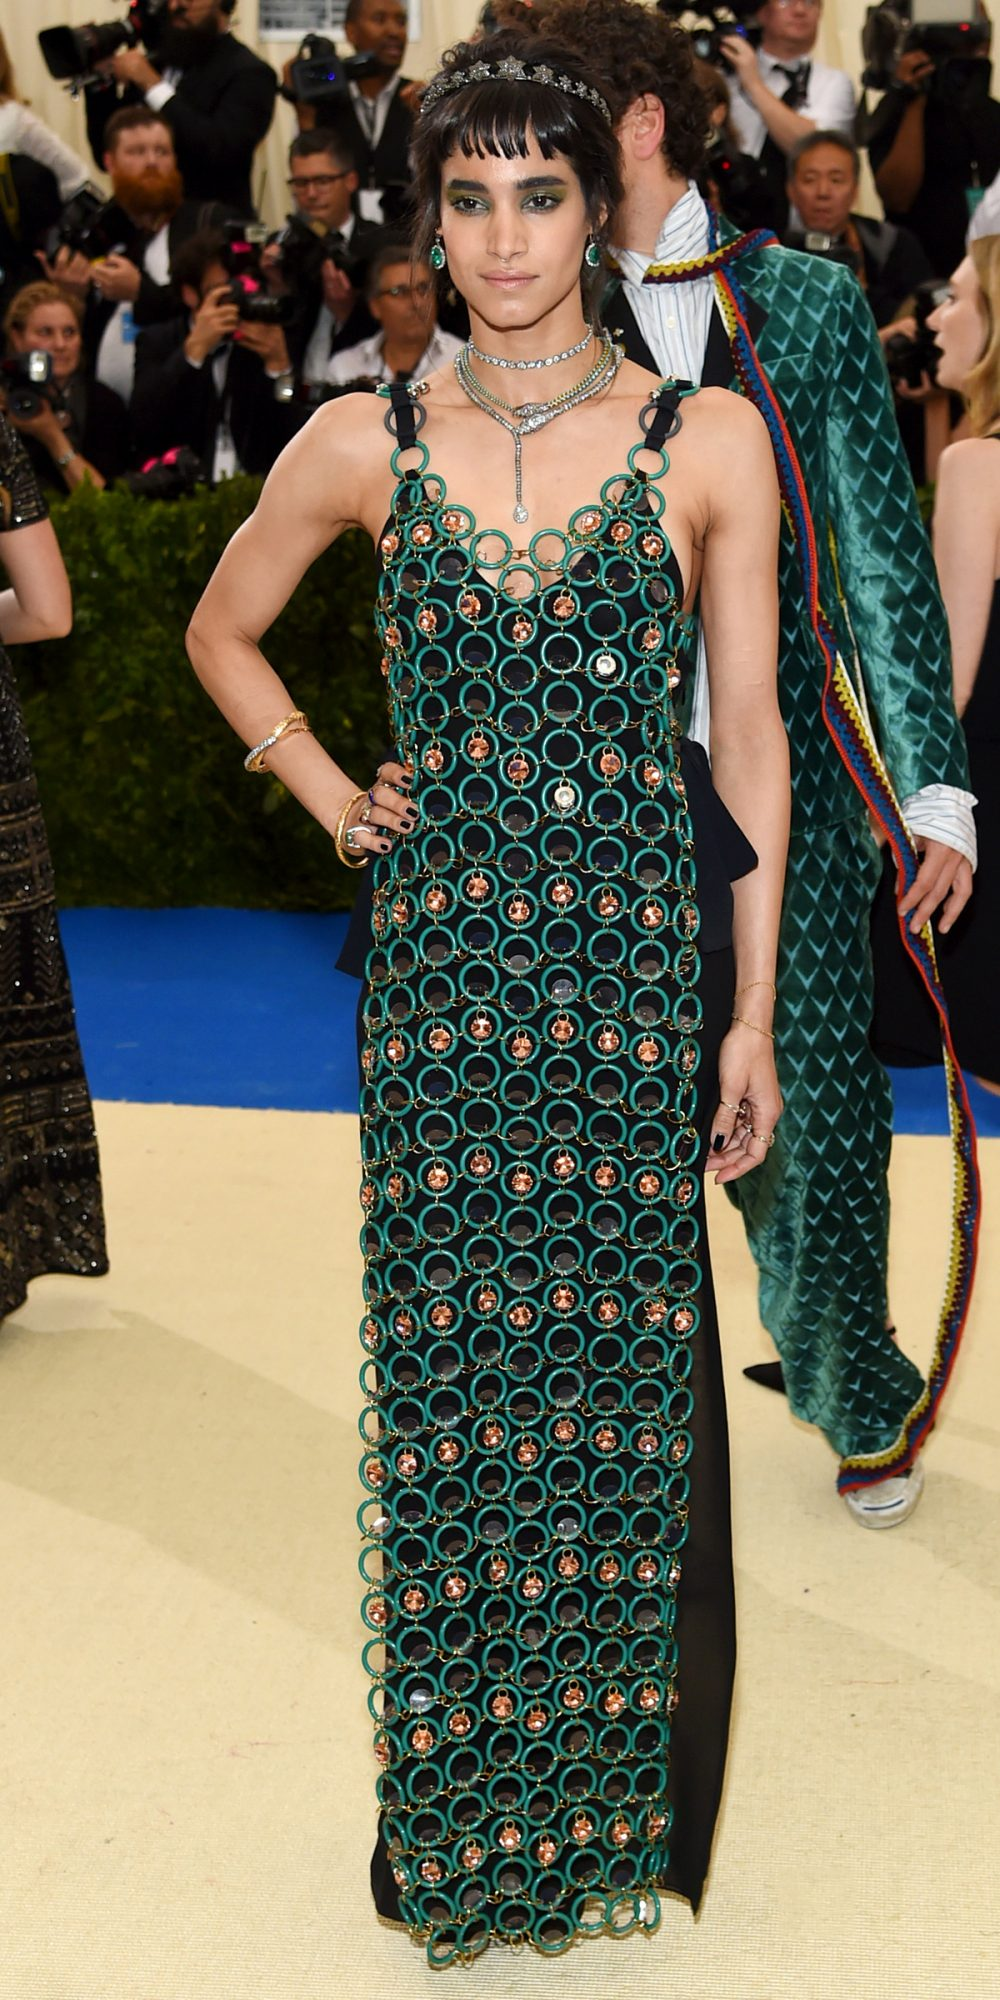 "<strong>Di Marni di Met Gala di New York City</strong><br/>""></div></div></div><div class="